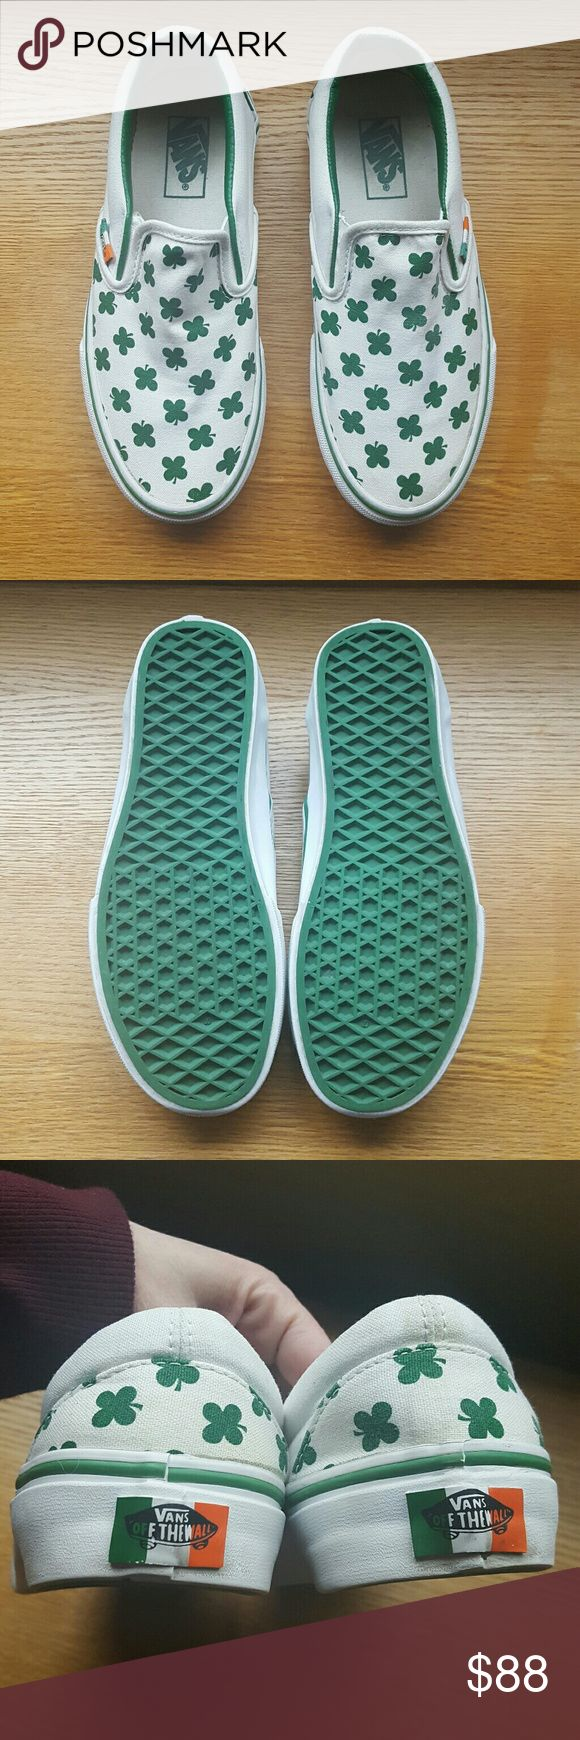 "VANS ""Erin go braugh"" Leprechaun Grn/TrWht W6/M4.5 EUC""Rare/HTF""VANS Limited ReleaseEdition  Erin Go Braugh Leprechaun green/true white Classic Slip on. Canvas upper featuring four leafed clovers all over, white rubber outsole with Leprechaun Green foxing stripe.""Erin go braugh"" is a Gaelic phrase and translated means ""Ireland forever"" and was/is a rebel yell for allegiance to the country. In amazing condition after my restore and have virtually no wear. Womens size 6 and mens 4.5…"